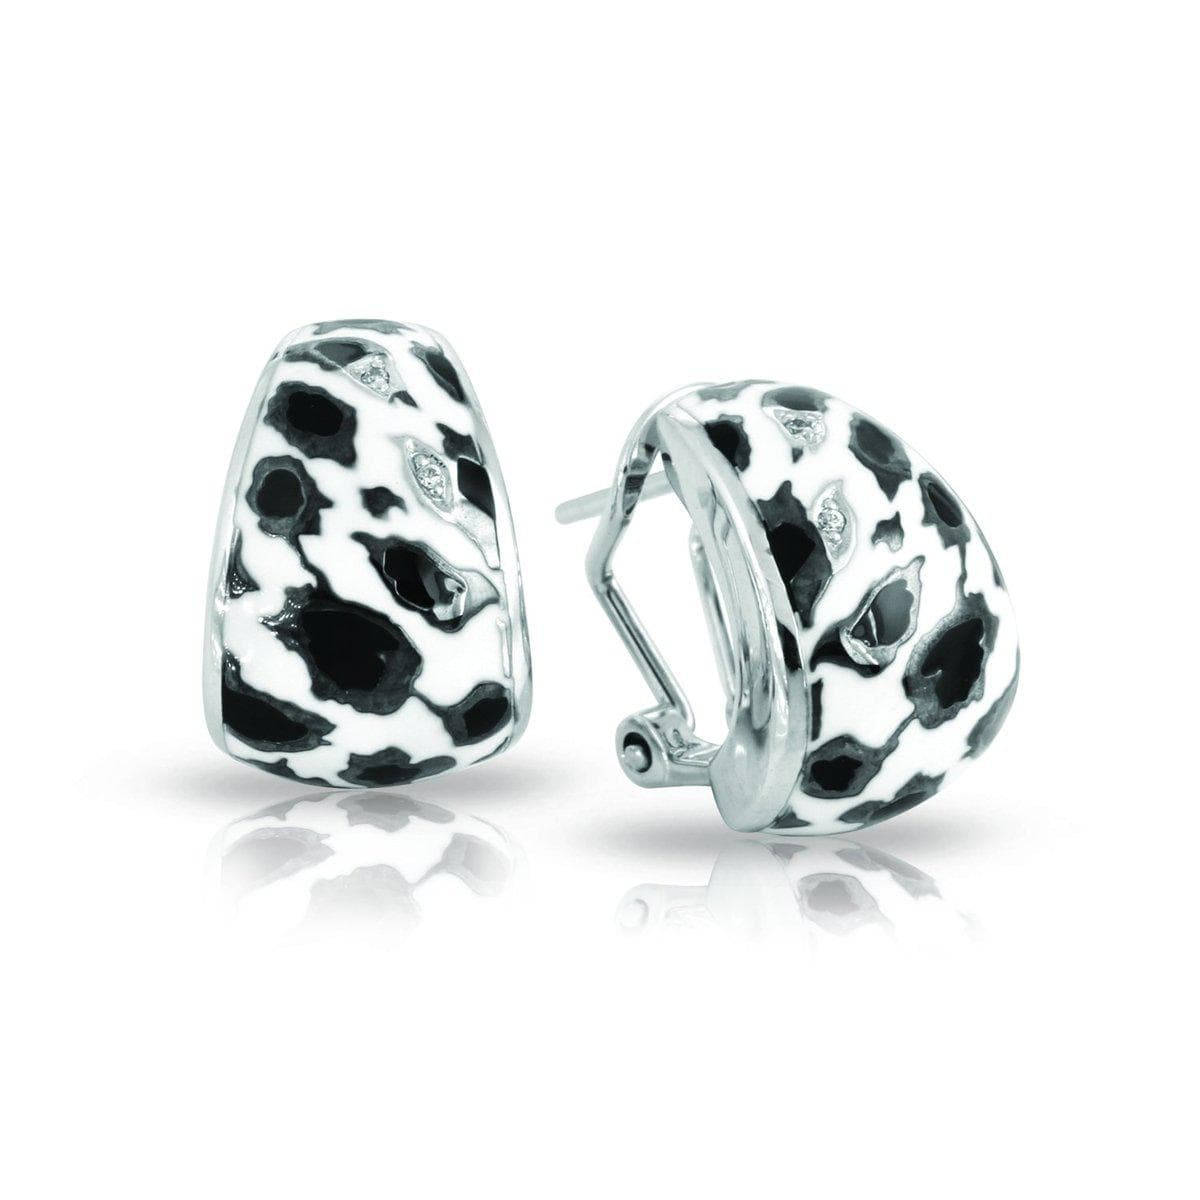 Leopard Black and White Earrings-Belle Etoile-Renee Taylor Gallery